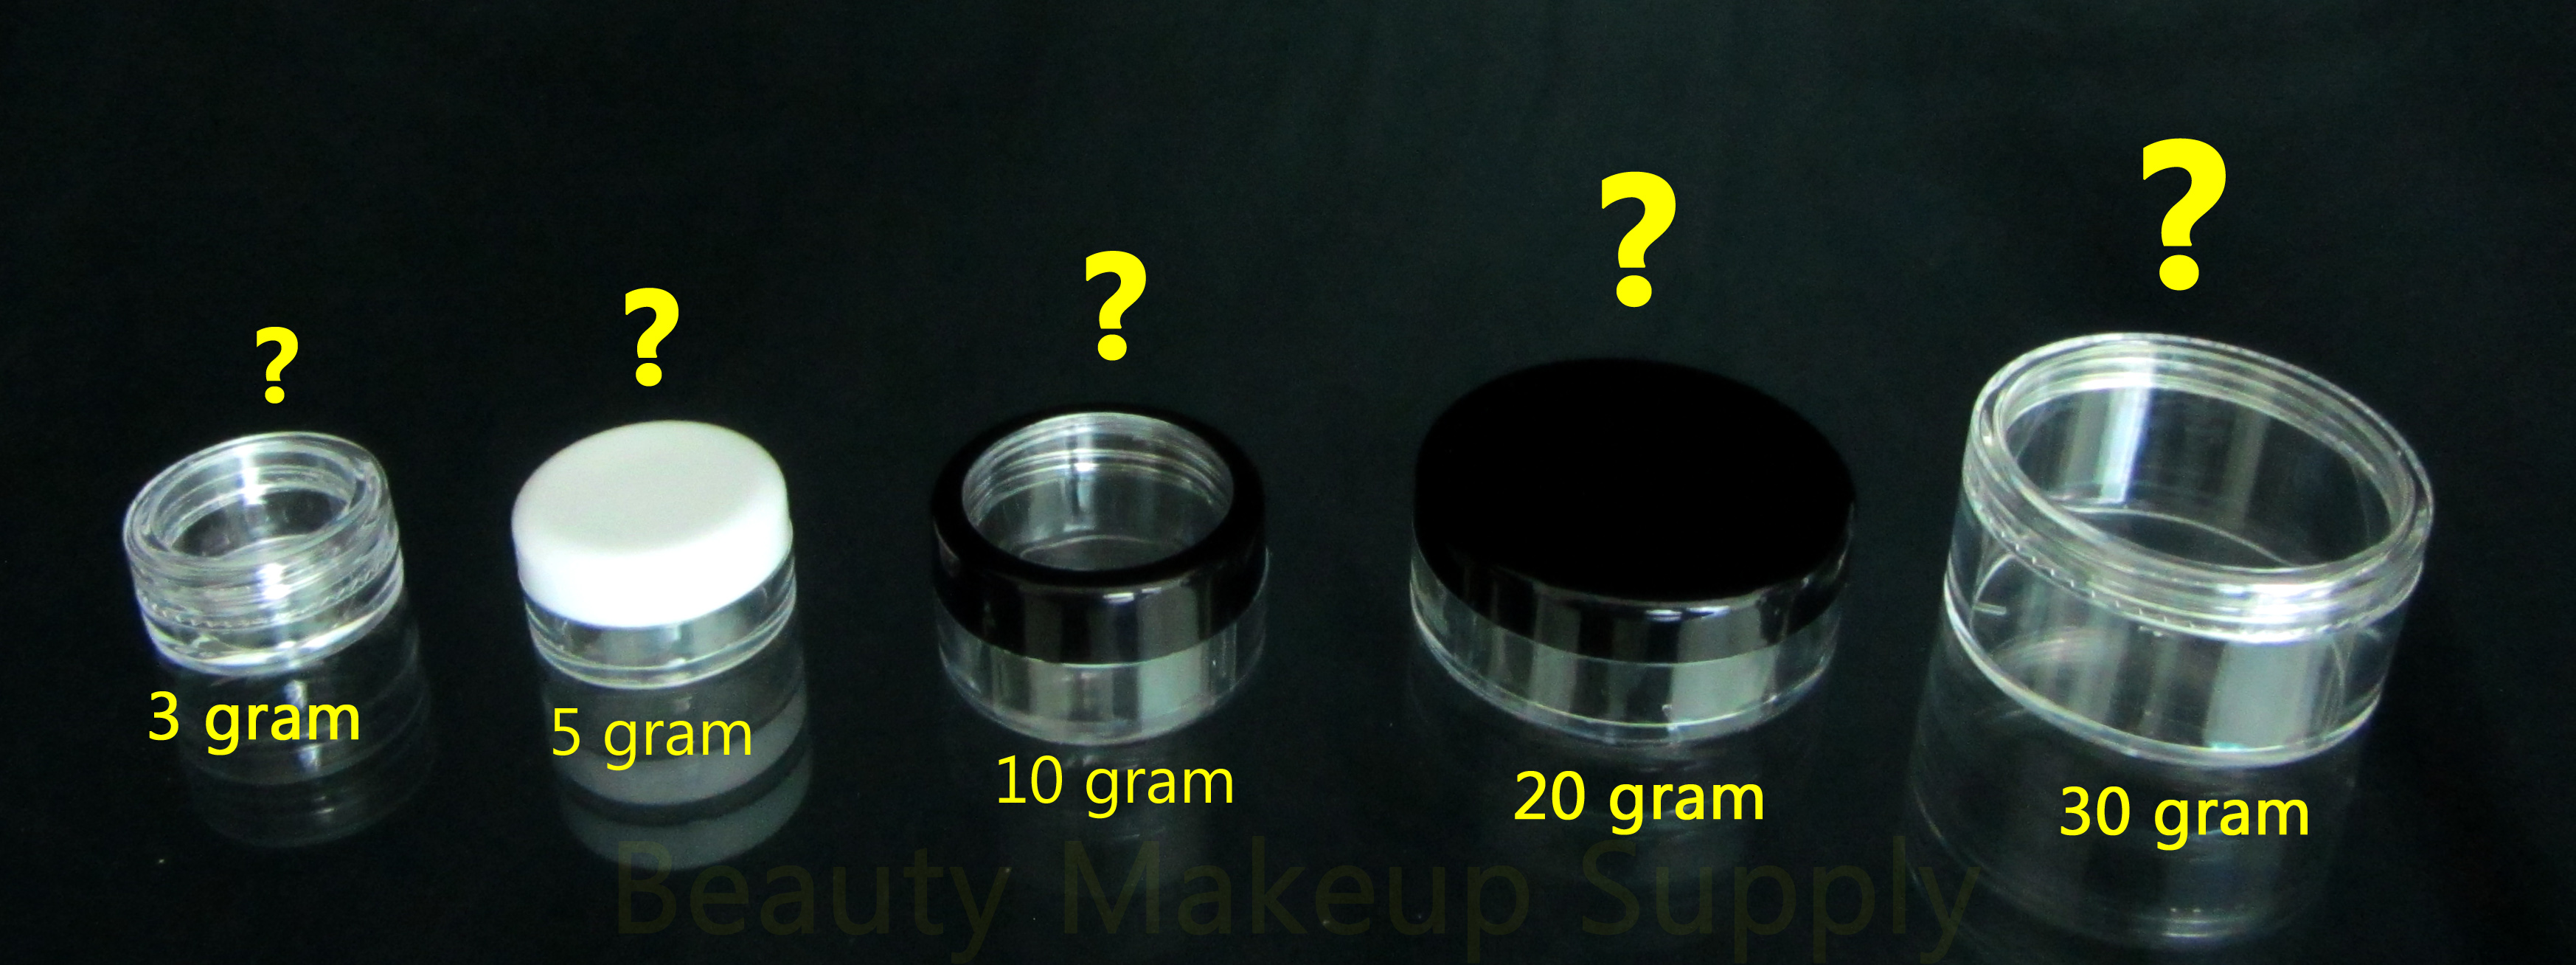 How do I choose the correct size of cosmetic jars